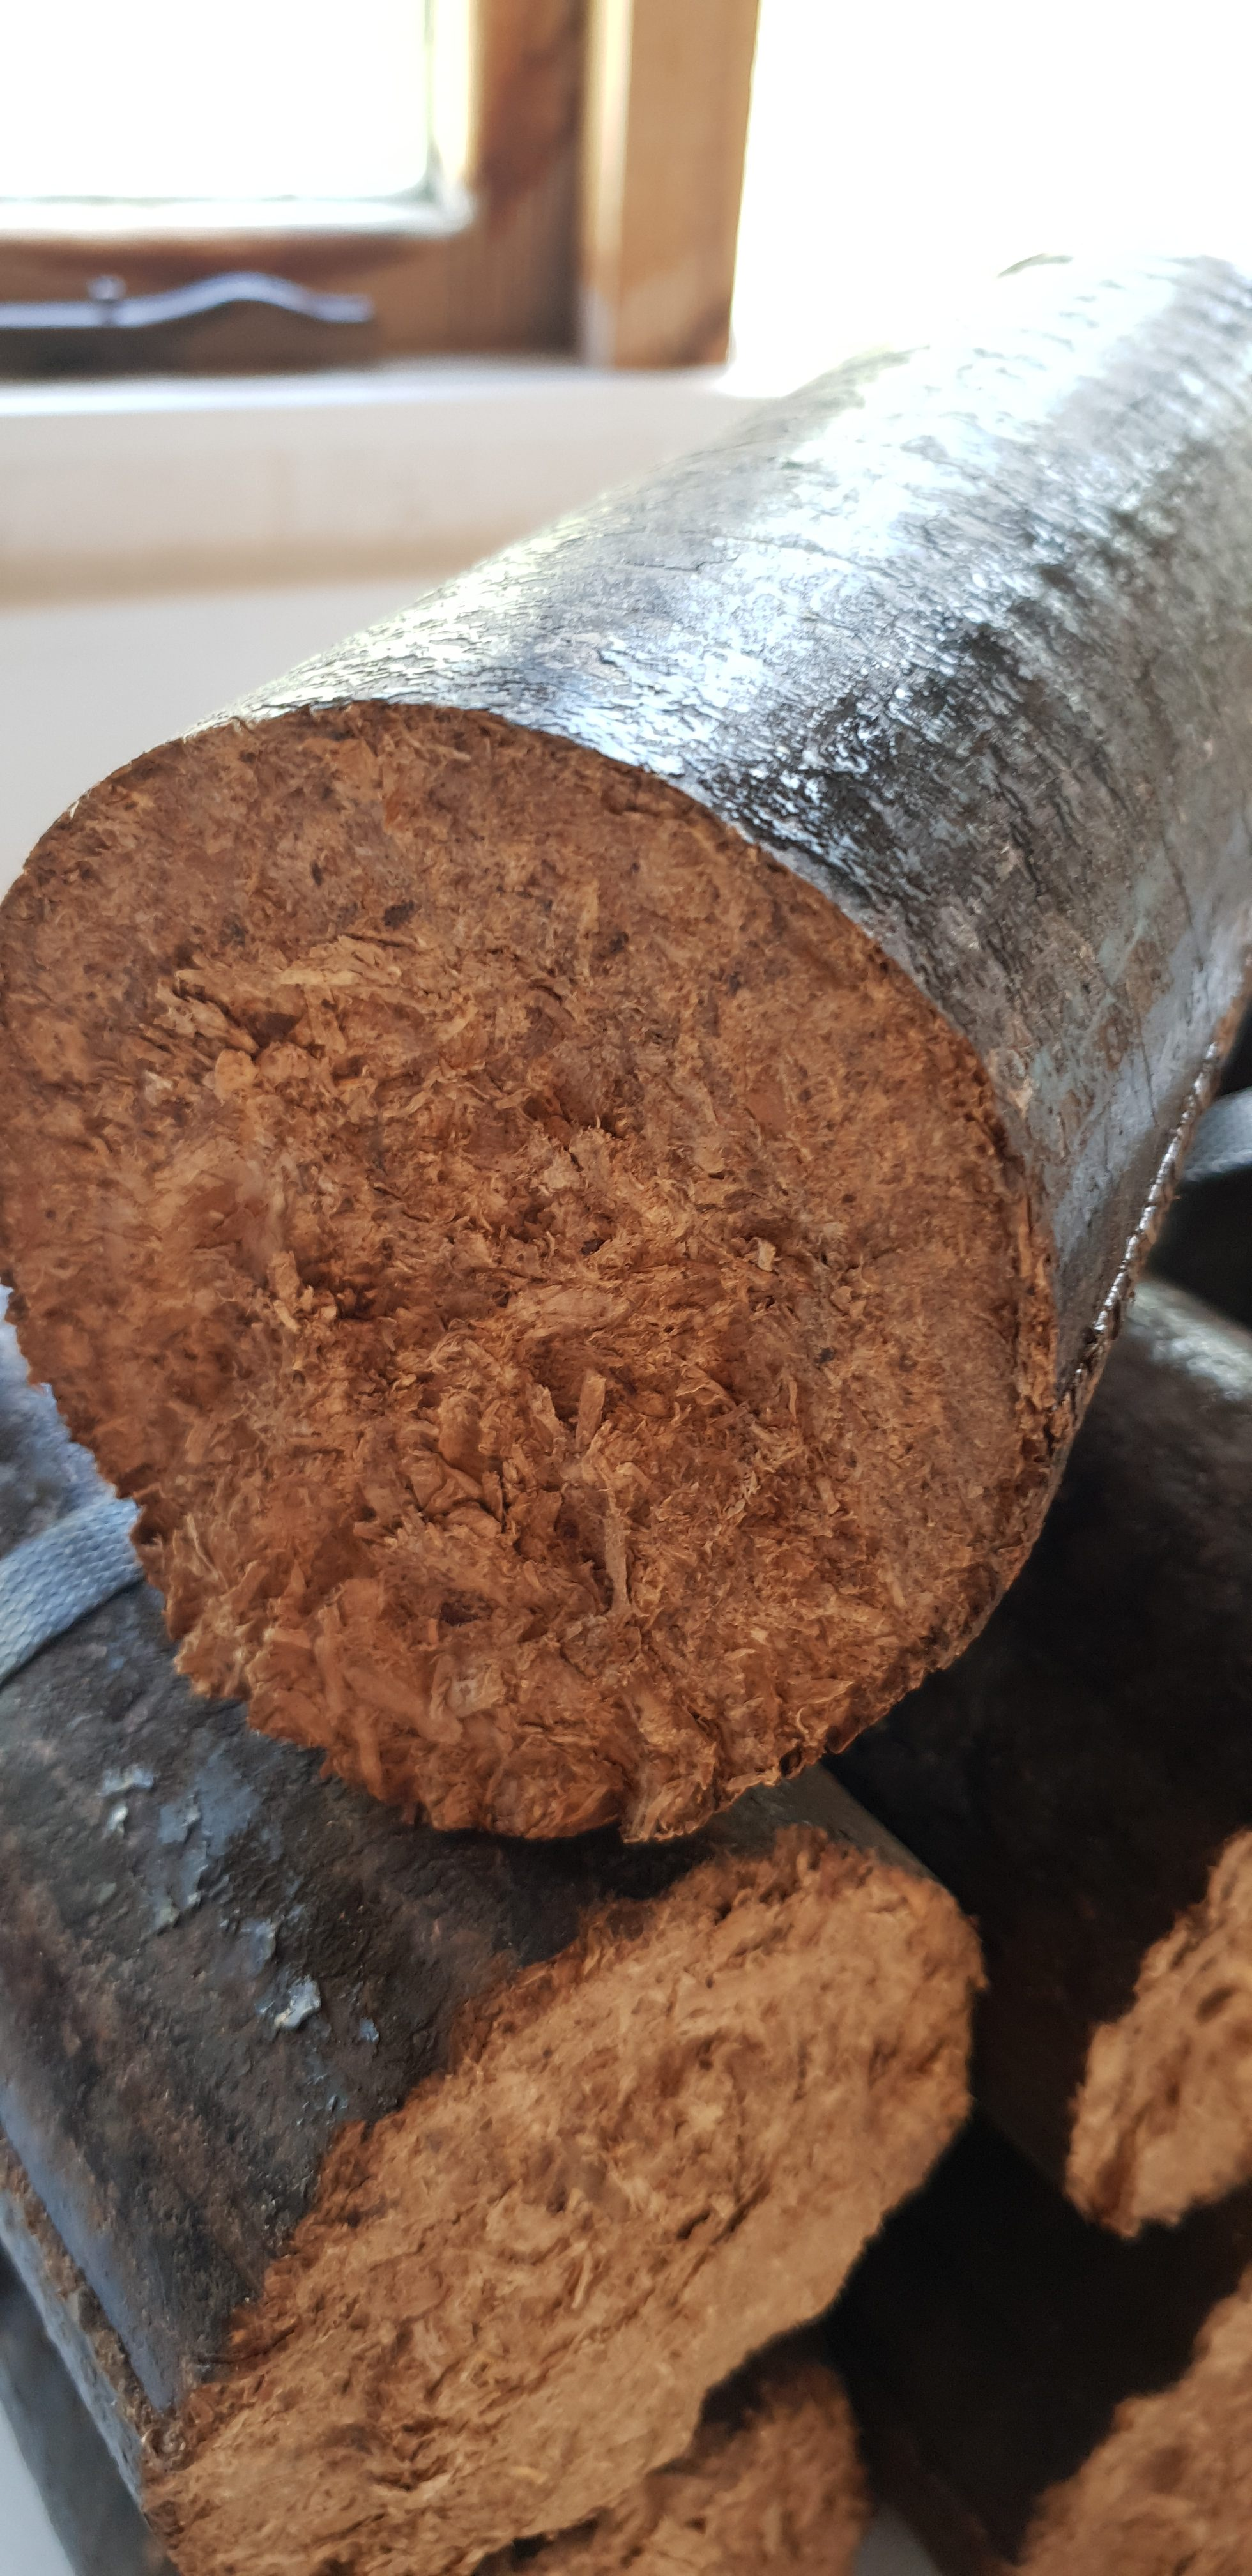 Hardwood Fuel Pellets In The UK. Where are they? | Archer's Mushrooms | Gourmet Mushrooms | UK Hardwood Fuel Pellets